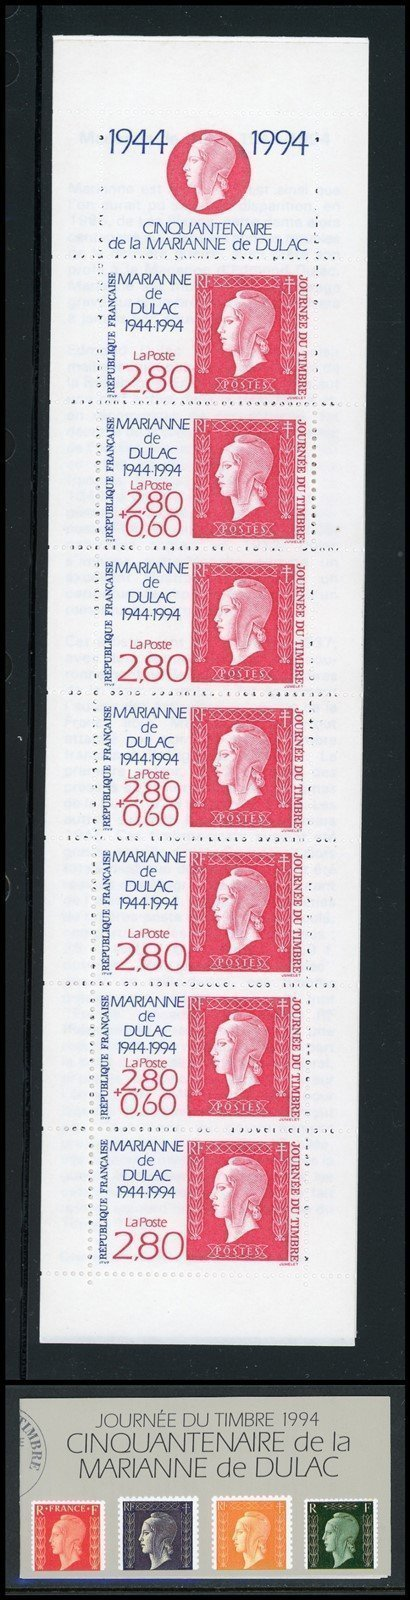 France Scott #2409a MNH BOOKLET Stamp Day Marianne de Dulac 50th ANN CV$25+